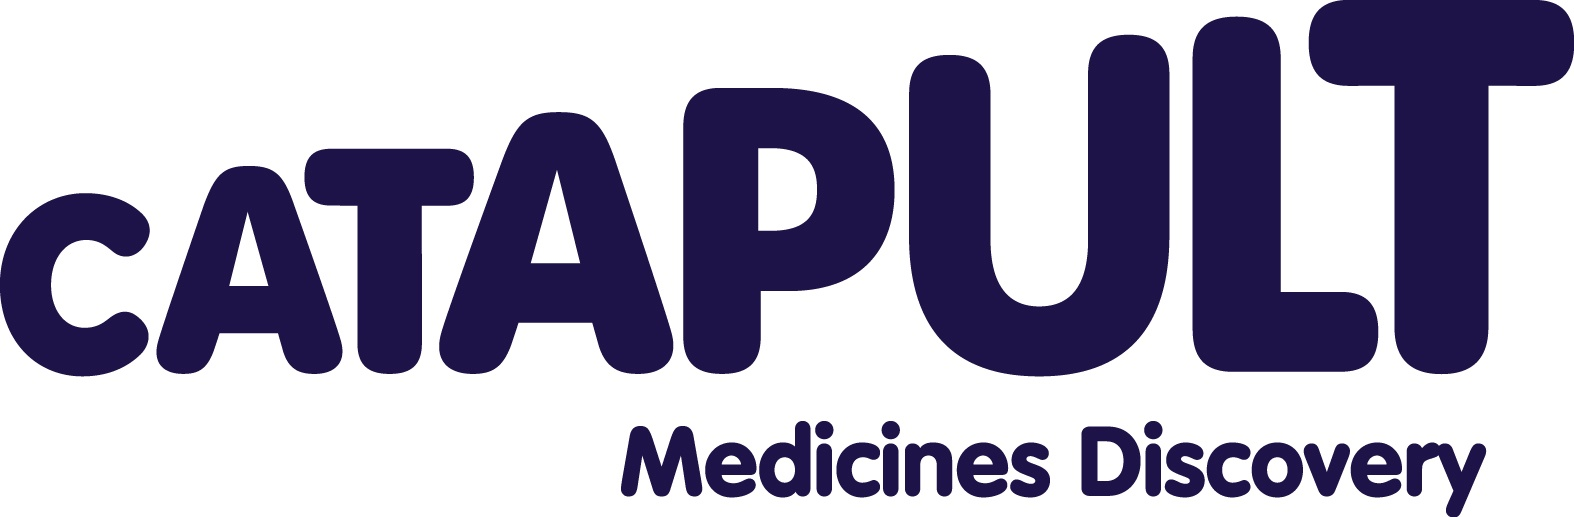 MEDICINES DISOVERY CATAPULT